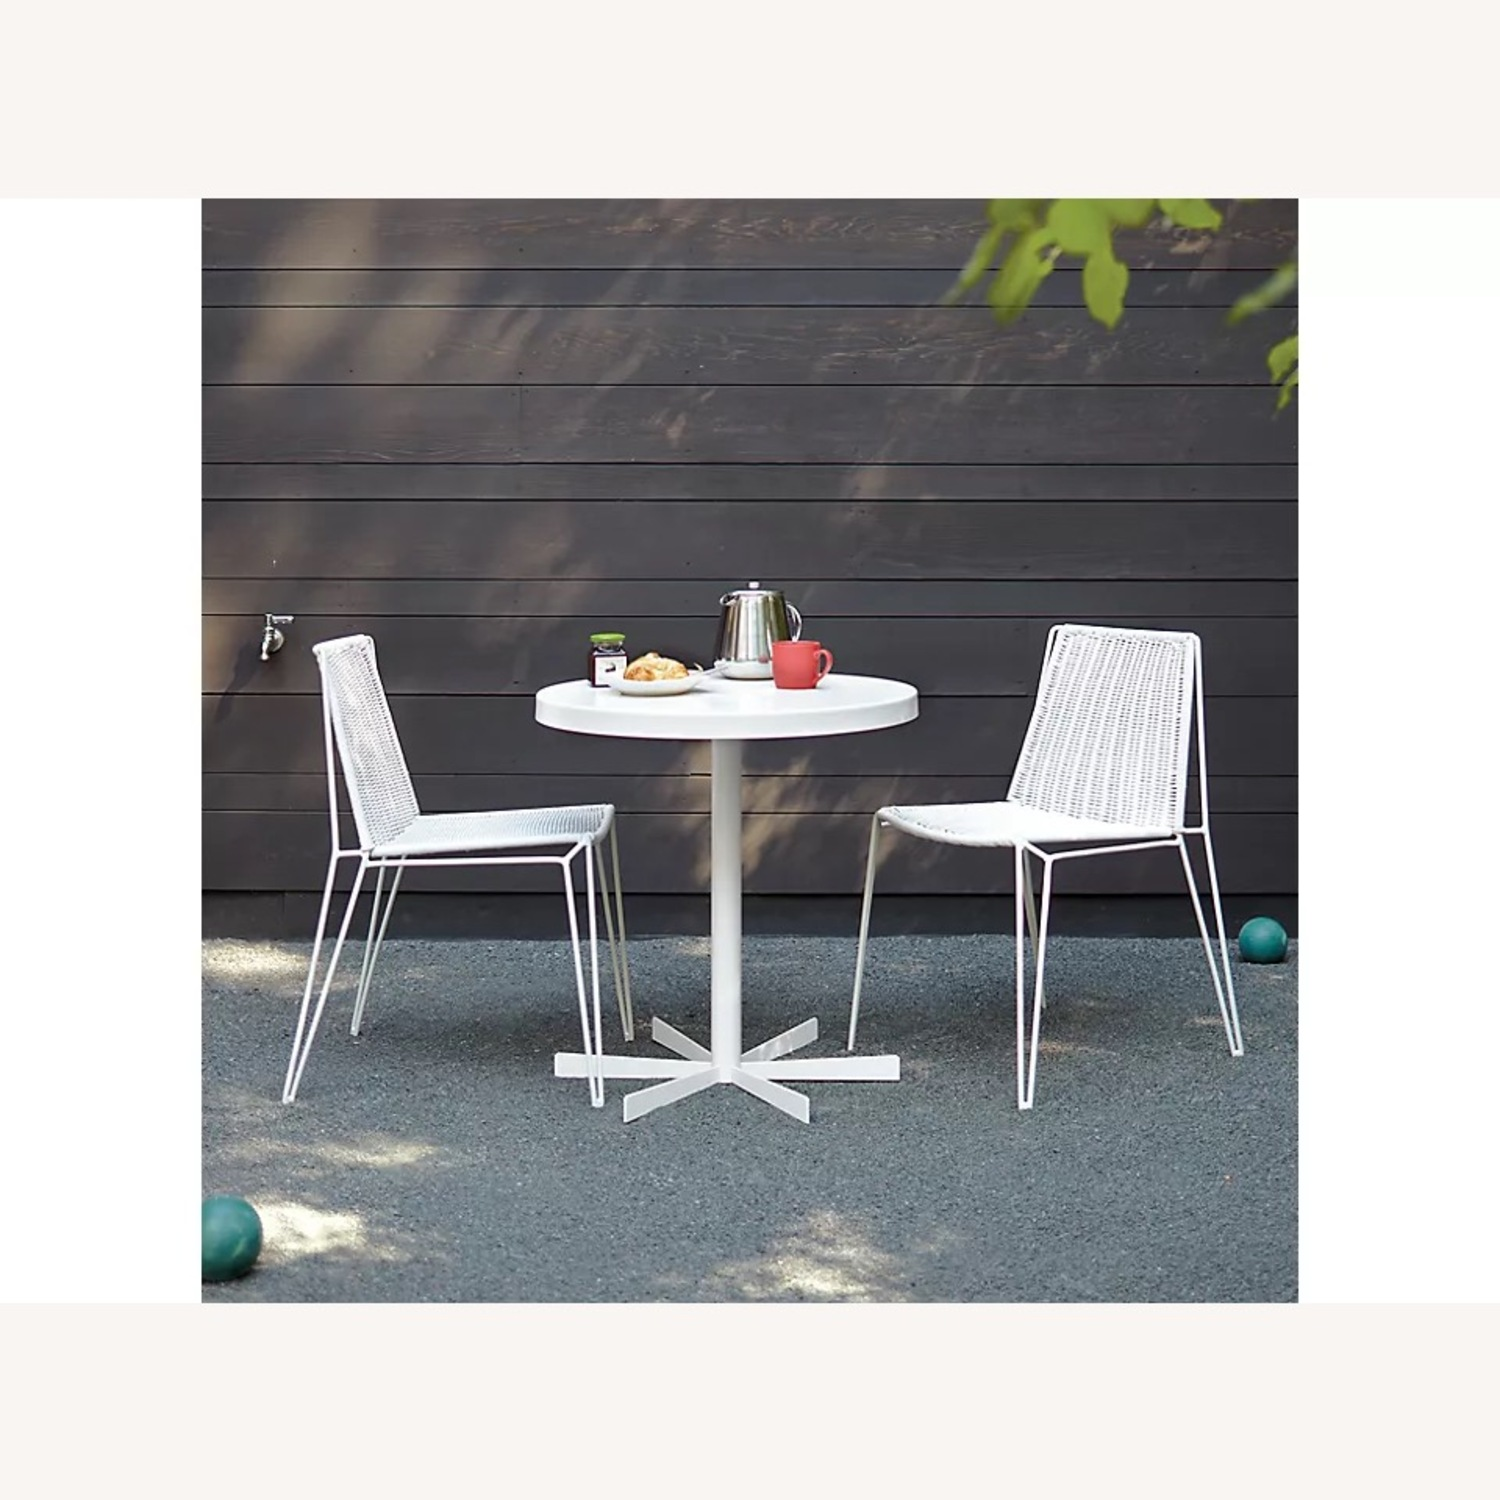 Room & Board Penelope Outdoor Cafe Table White - image-0